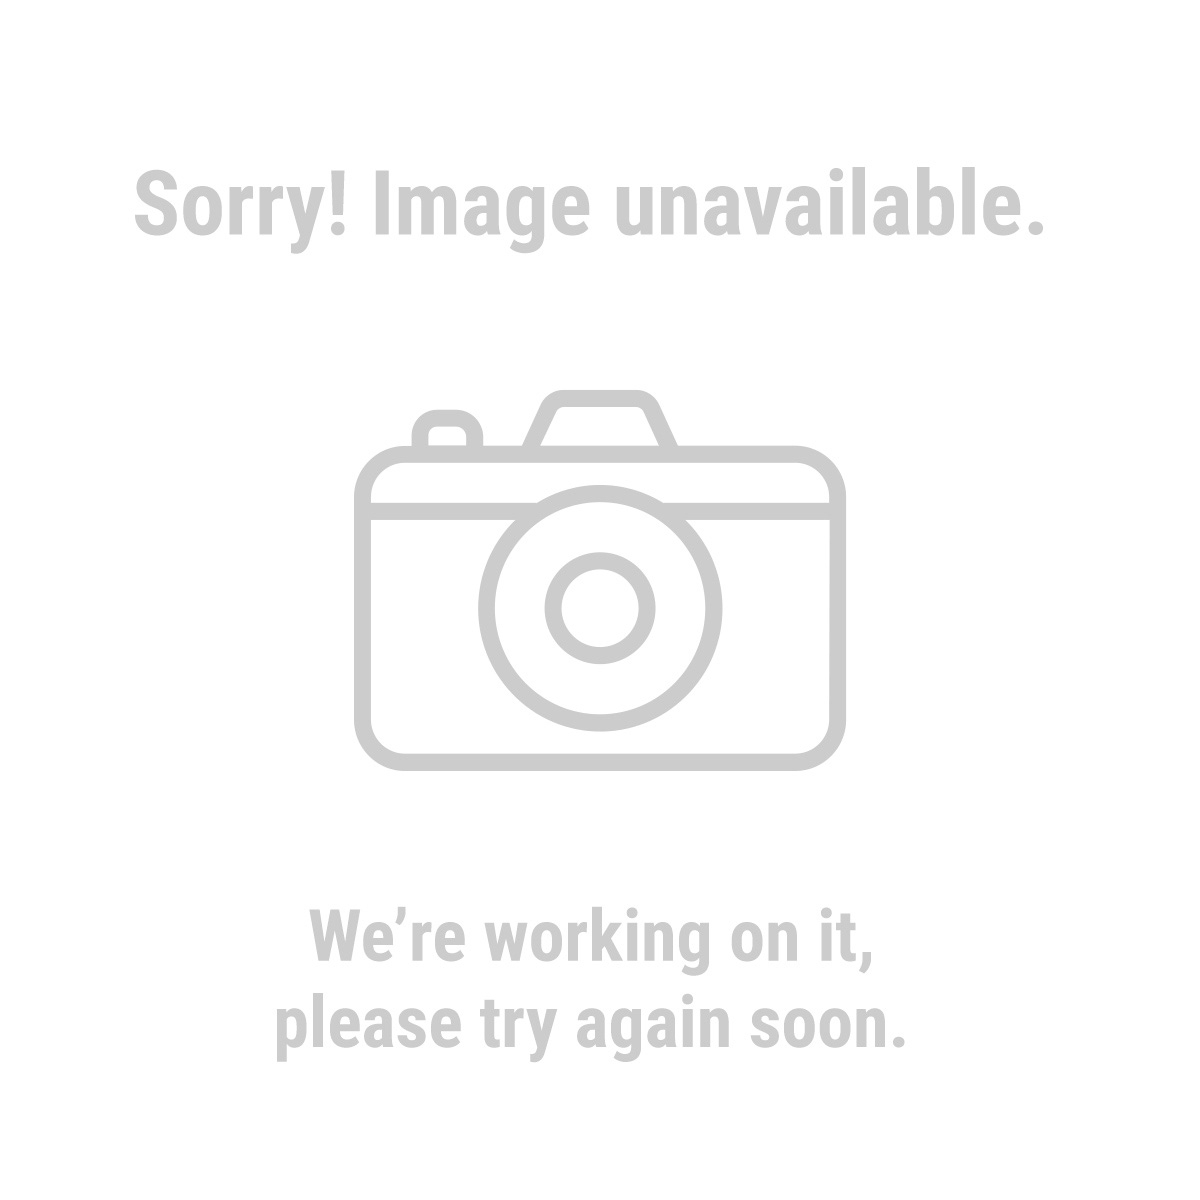 Warrior® 68459 33 Piece Security Bit Set